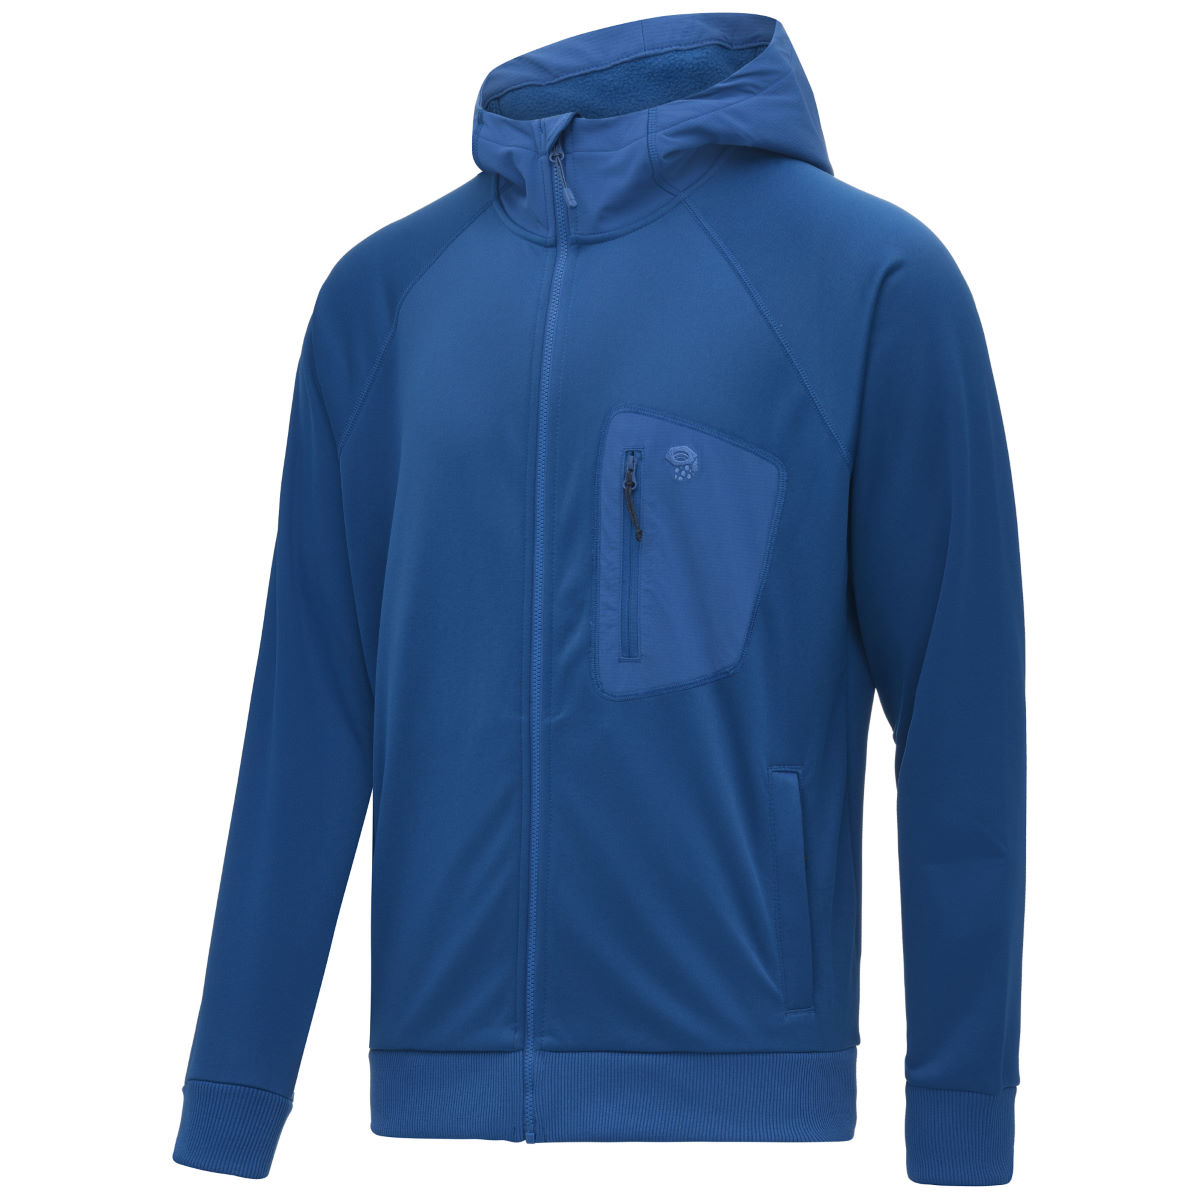 Mountain Hardwear Mountain Hardwear Norse Peak™ Full Zip Hoody   Hoodies